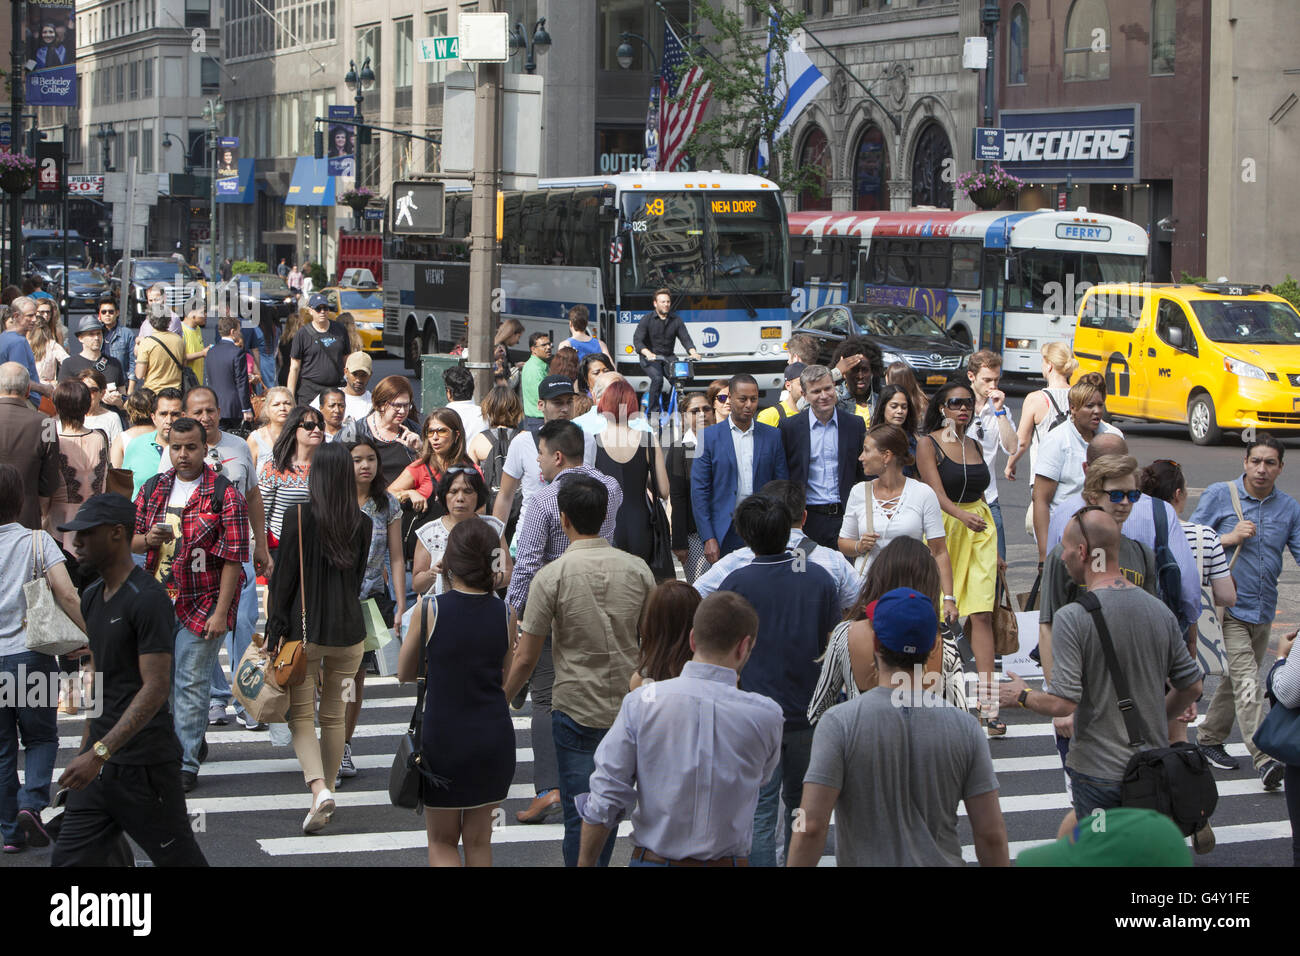 The always busy crosswalk at 42nd Street and 5th Avenue in New York CIty. - Stock Image